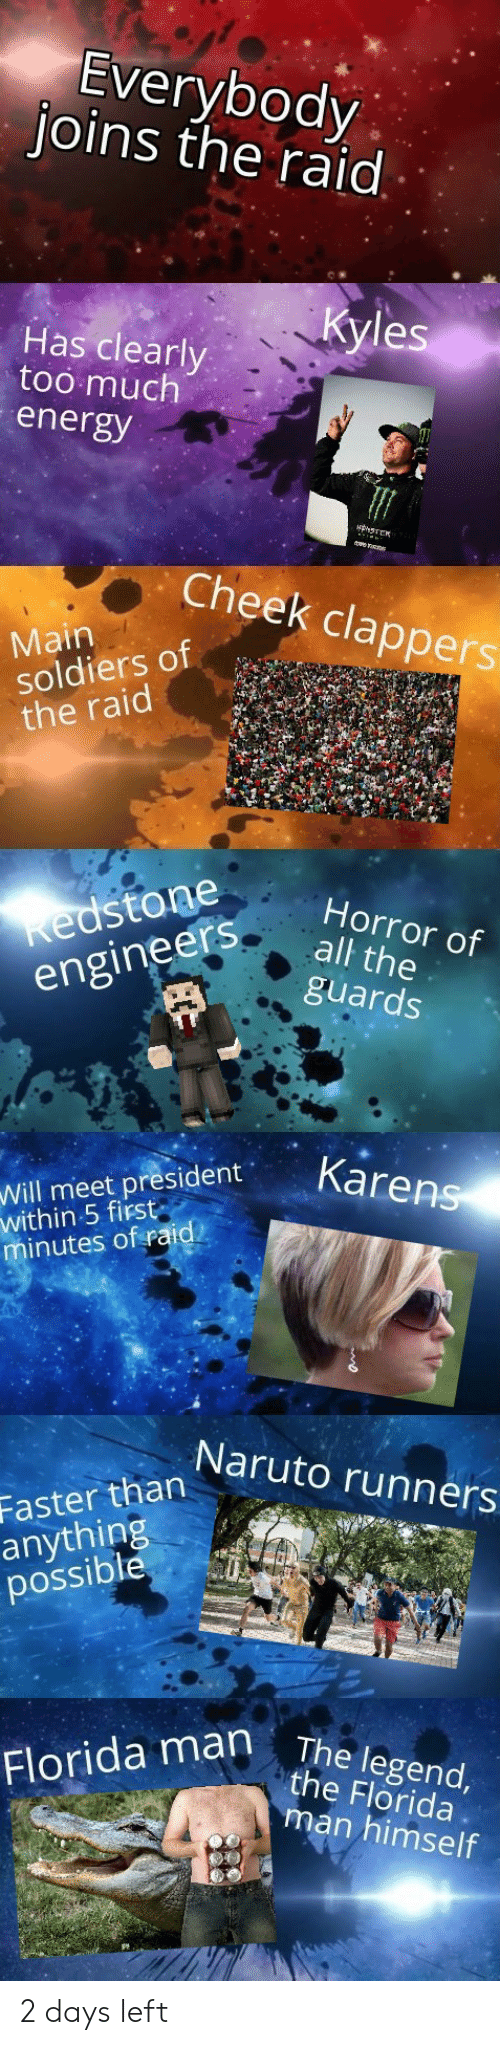 Energy, Florida Man, and Funny: Everybody  joins the raid  Kyles  Has clearly  too much  energy  Cheek clappers  Main  soldiers of  the raid  Kedstone  engineers  Horror of  all the  guards  Karens  Will meet president  within 5 first  minutes of raid  Naruto runners  Faster than  anything  possible  Florida man The legend,  the Florida  man himself 2 days left